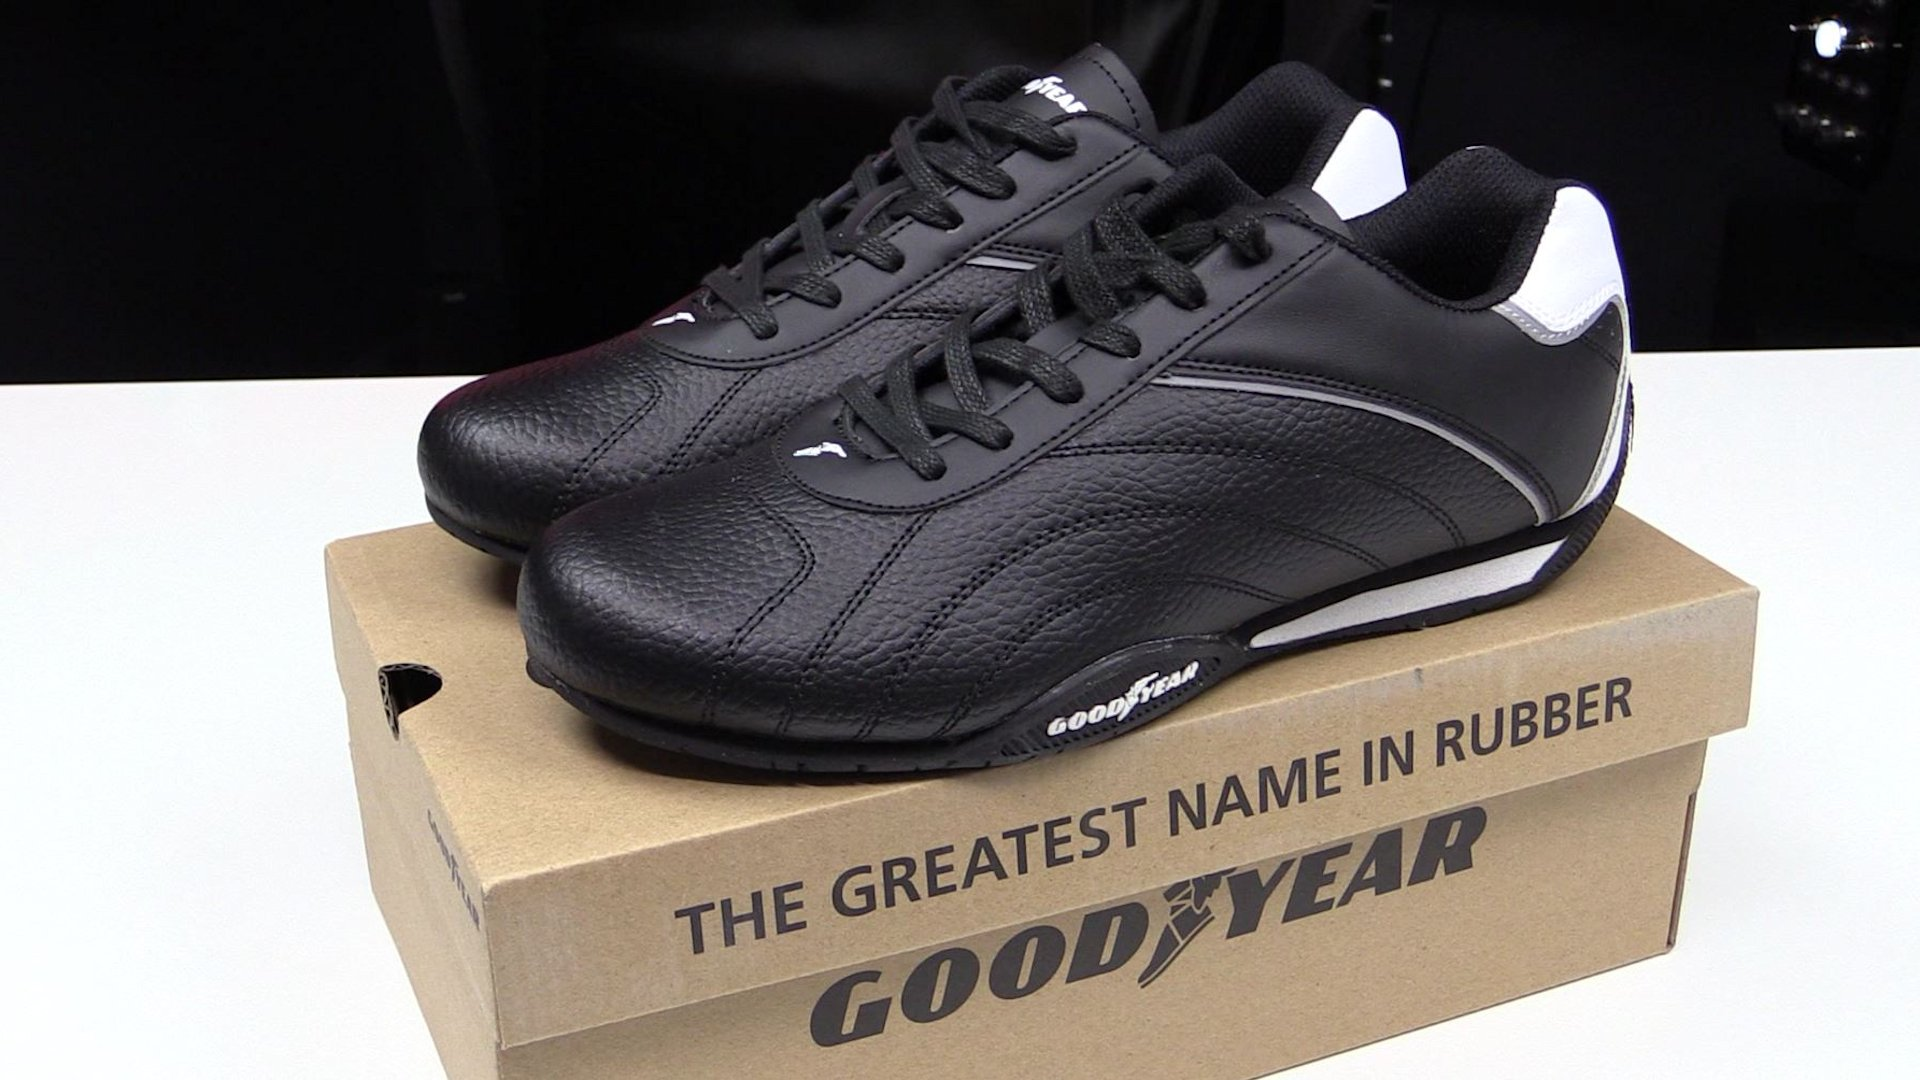 Goodyear Footwear Ori Review Best Sim Racing Shoes for $40